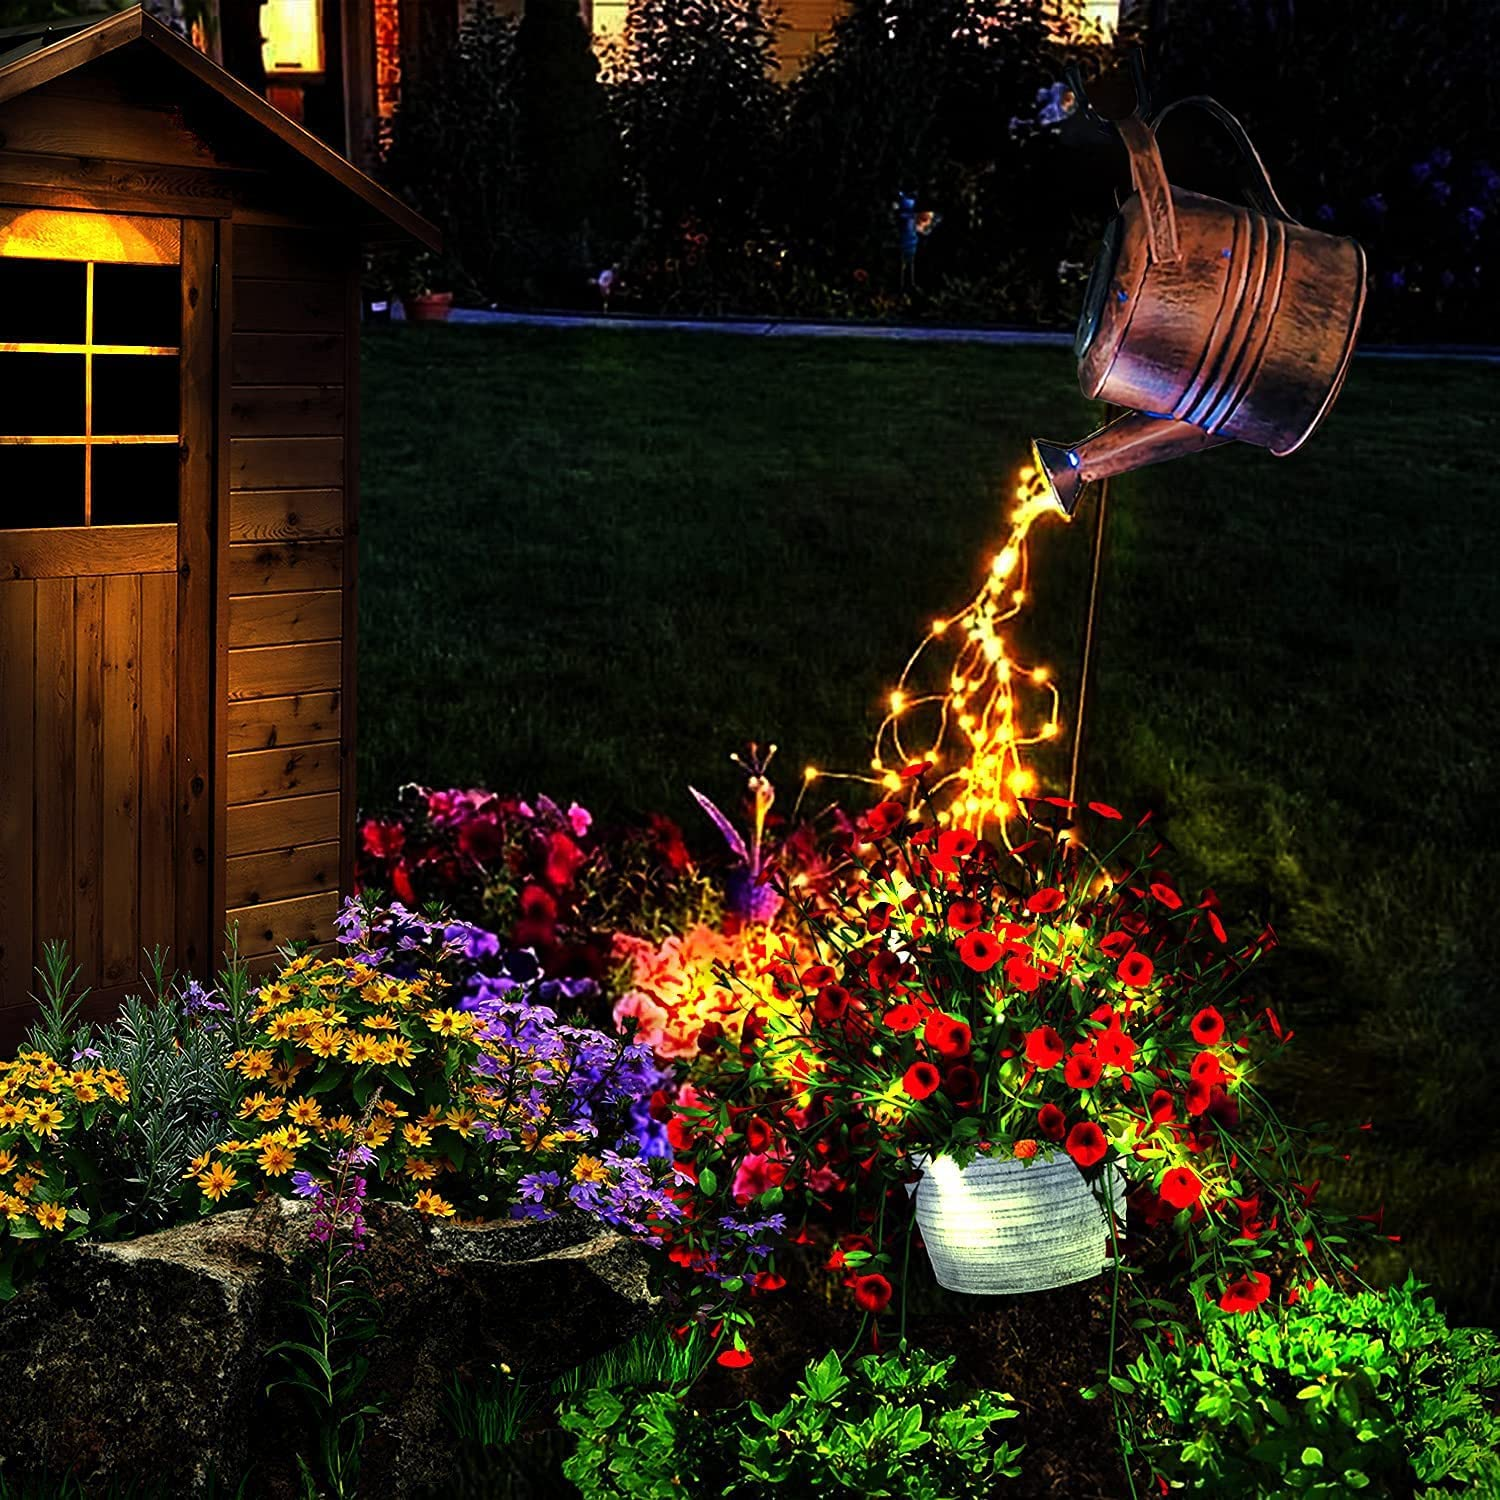 Solar Shower Garden Art Light Decoration - LED Watering Can Lights Waterproof Strip Lights for Outdoors Lamp Outdoor Star String Fairy Light with Bracket for Home Pathway Patio Yard Festoon Flash